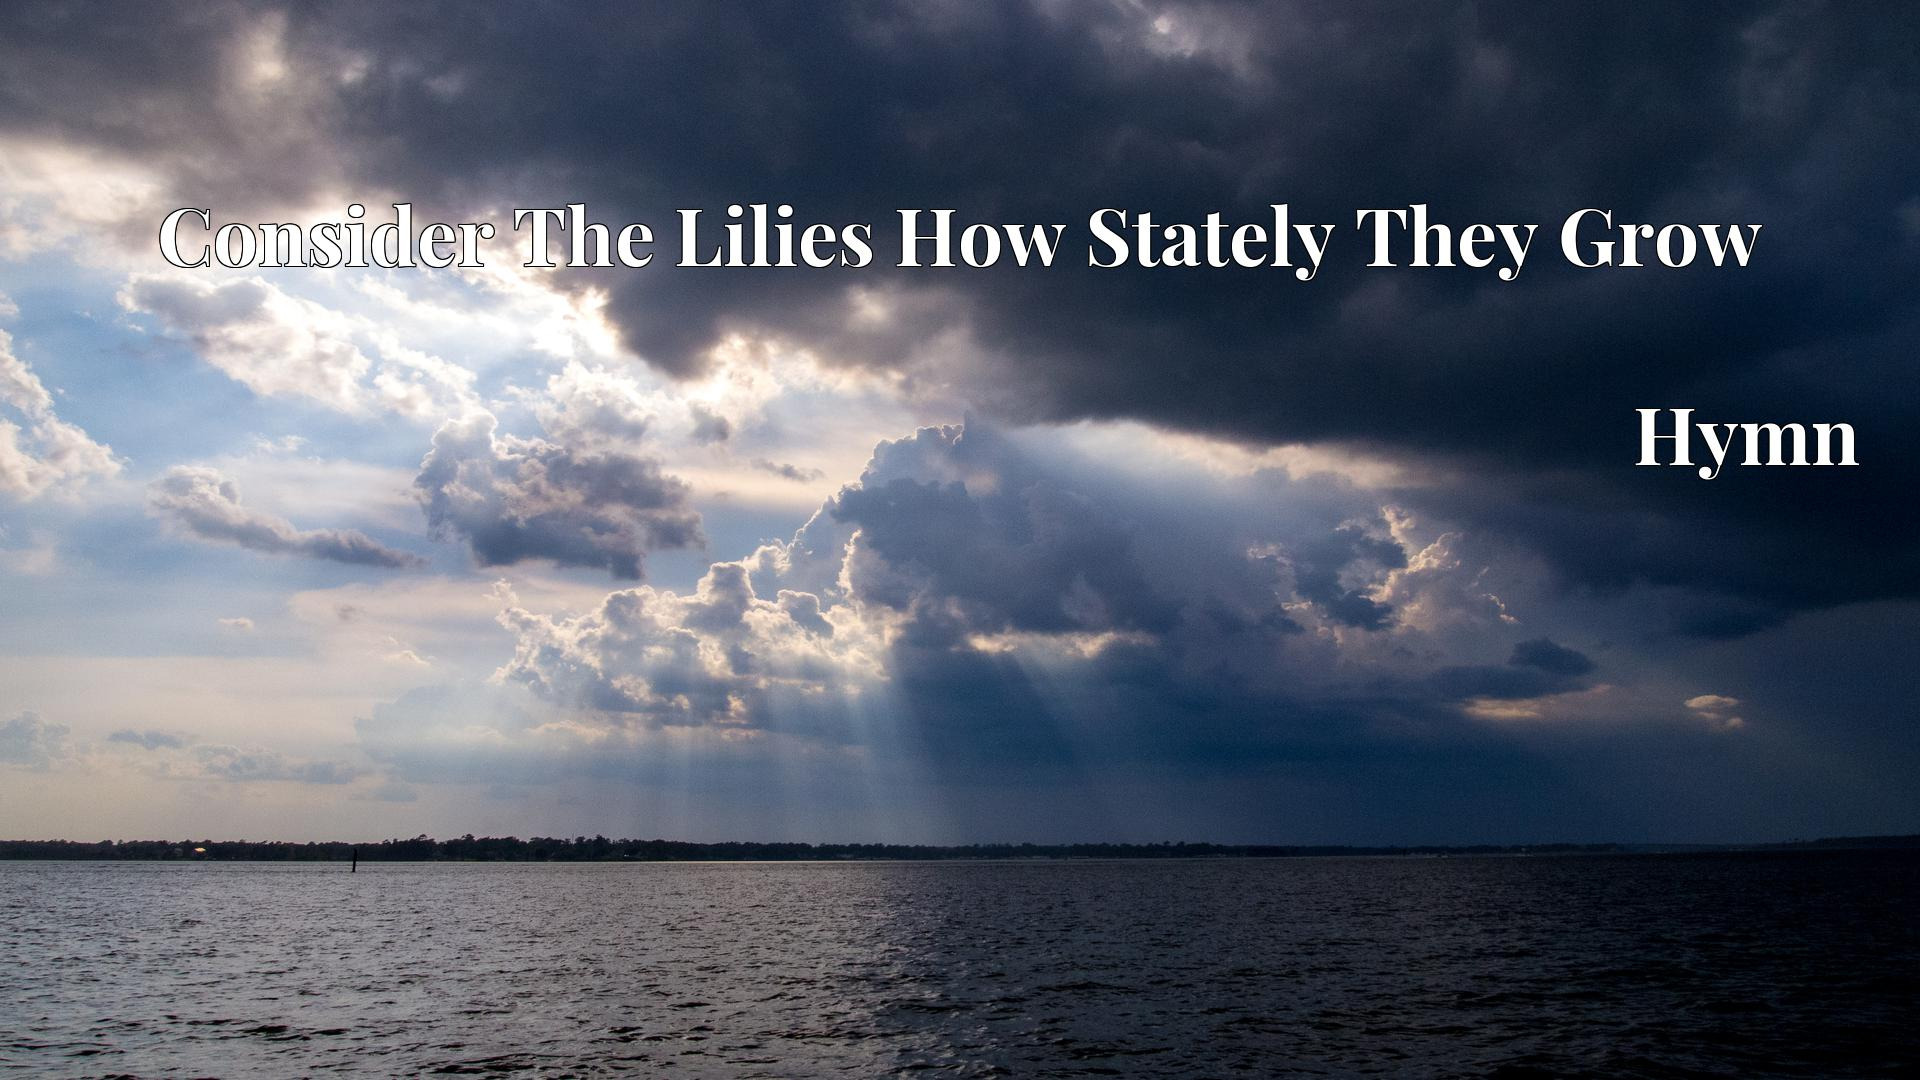 Consider The Lilies How Stately They Grow - Hymn